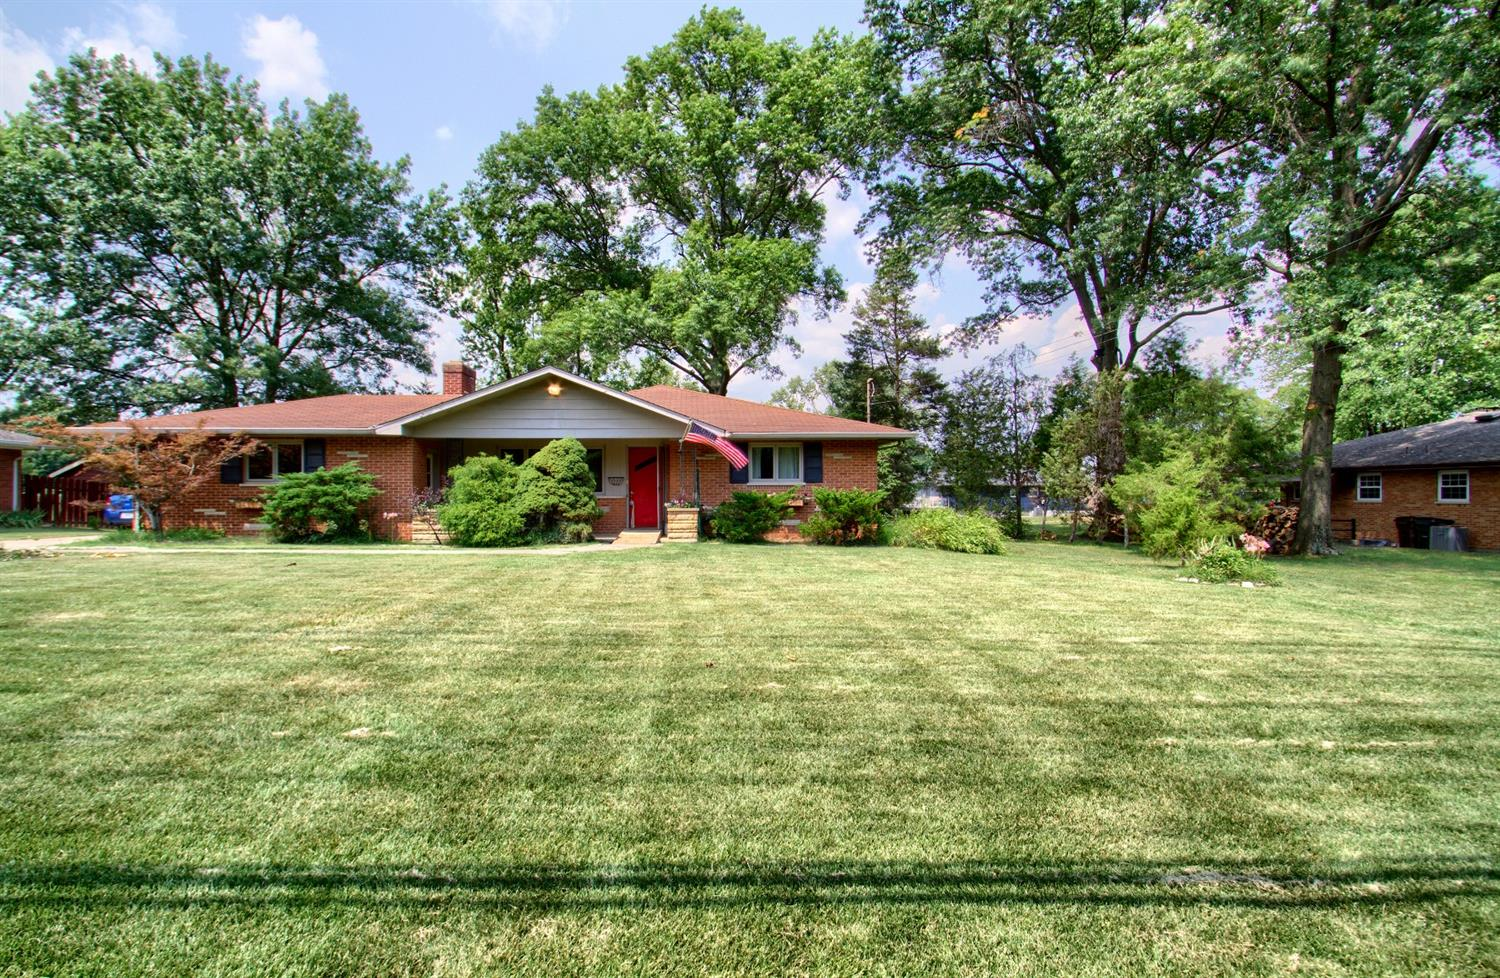 8090 Hopewell Road, Montgomery, Ohio 45242, 3 Bedrooms Bedrooms, 6 Rooms Rooms,1 BathroomBathrooms,Single Family Residence,For Sale,Hopewell,1708851